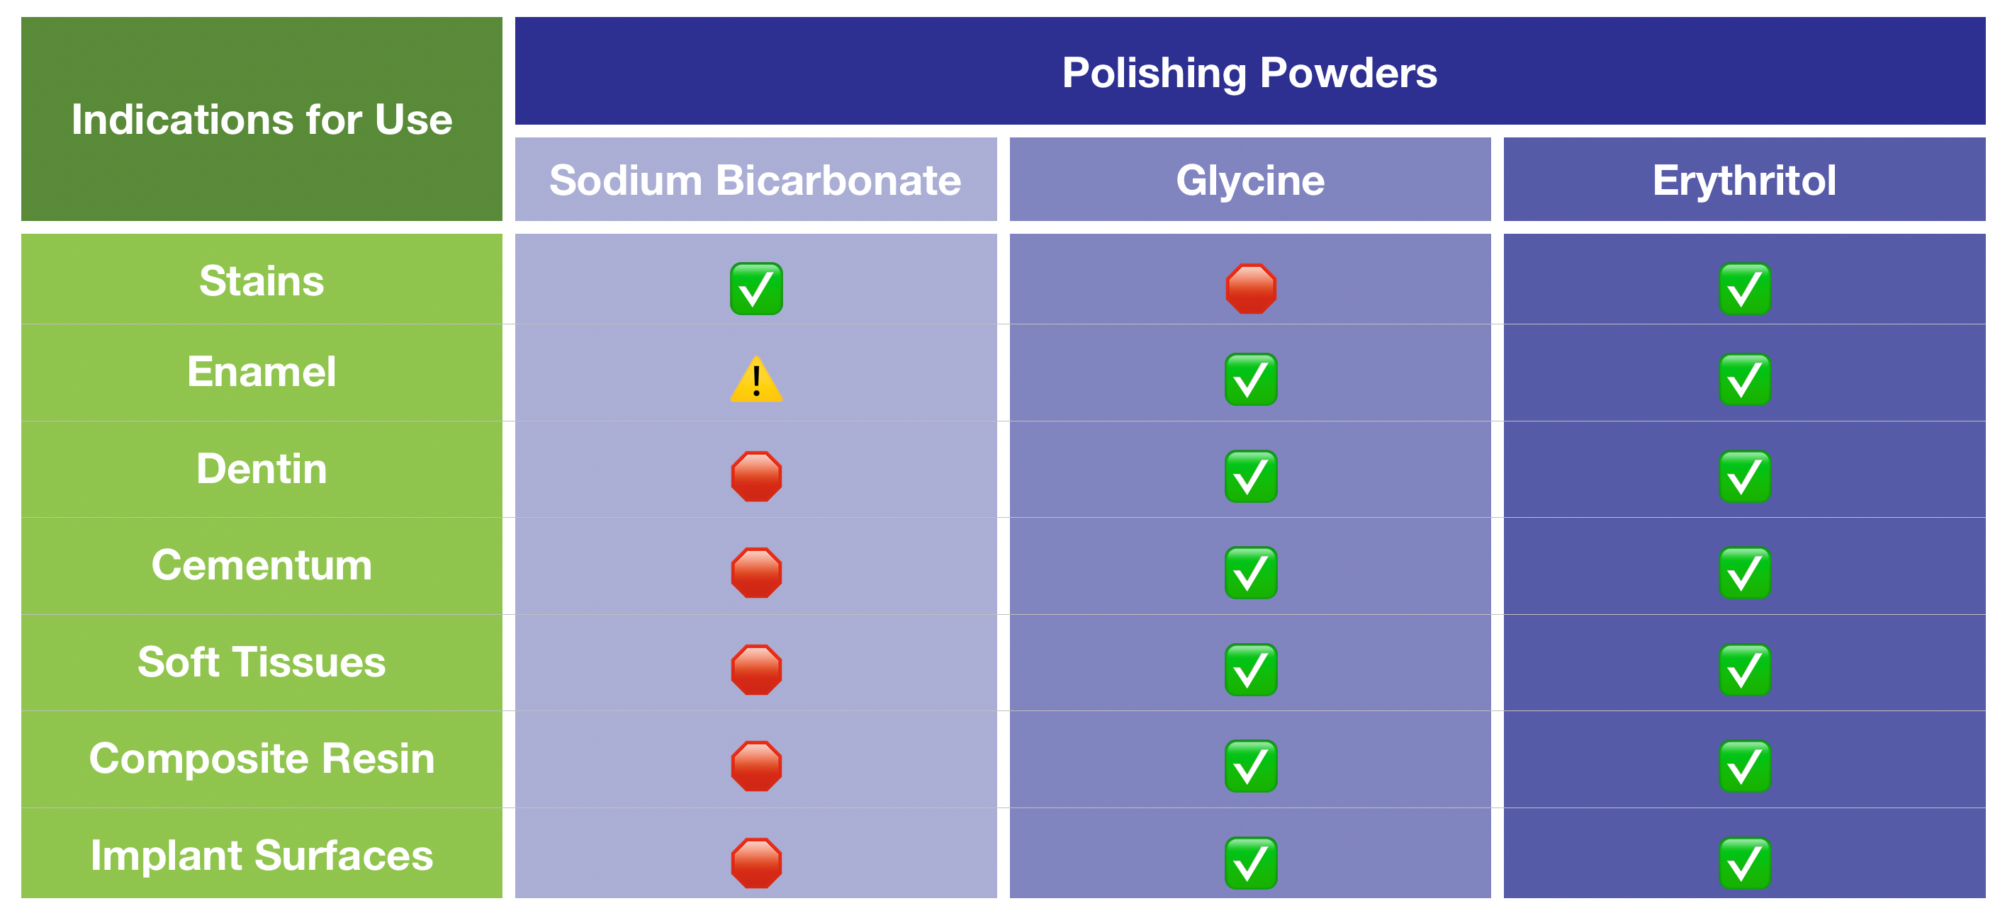 . A comparison of available air polishing powders and their uses.